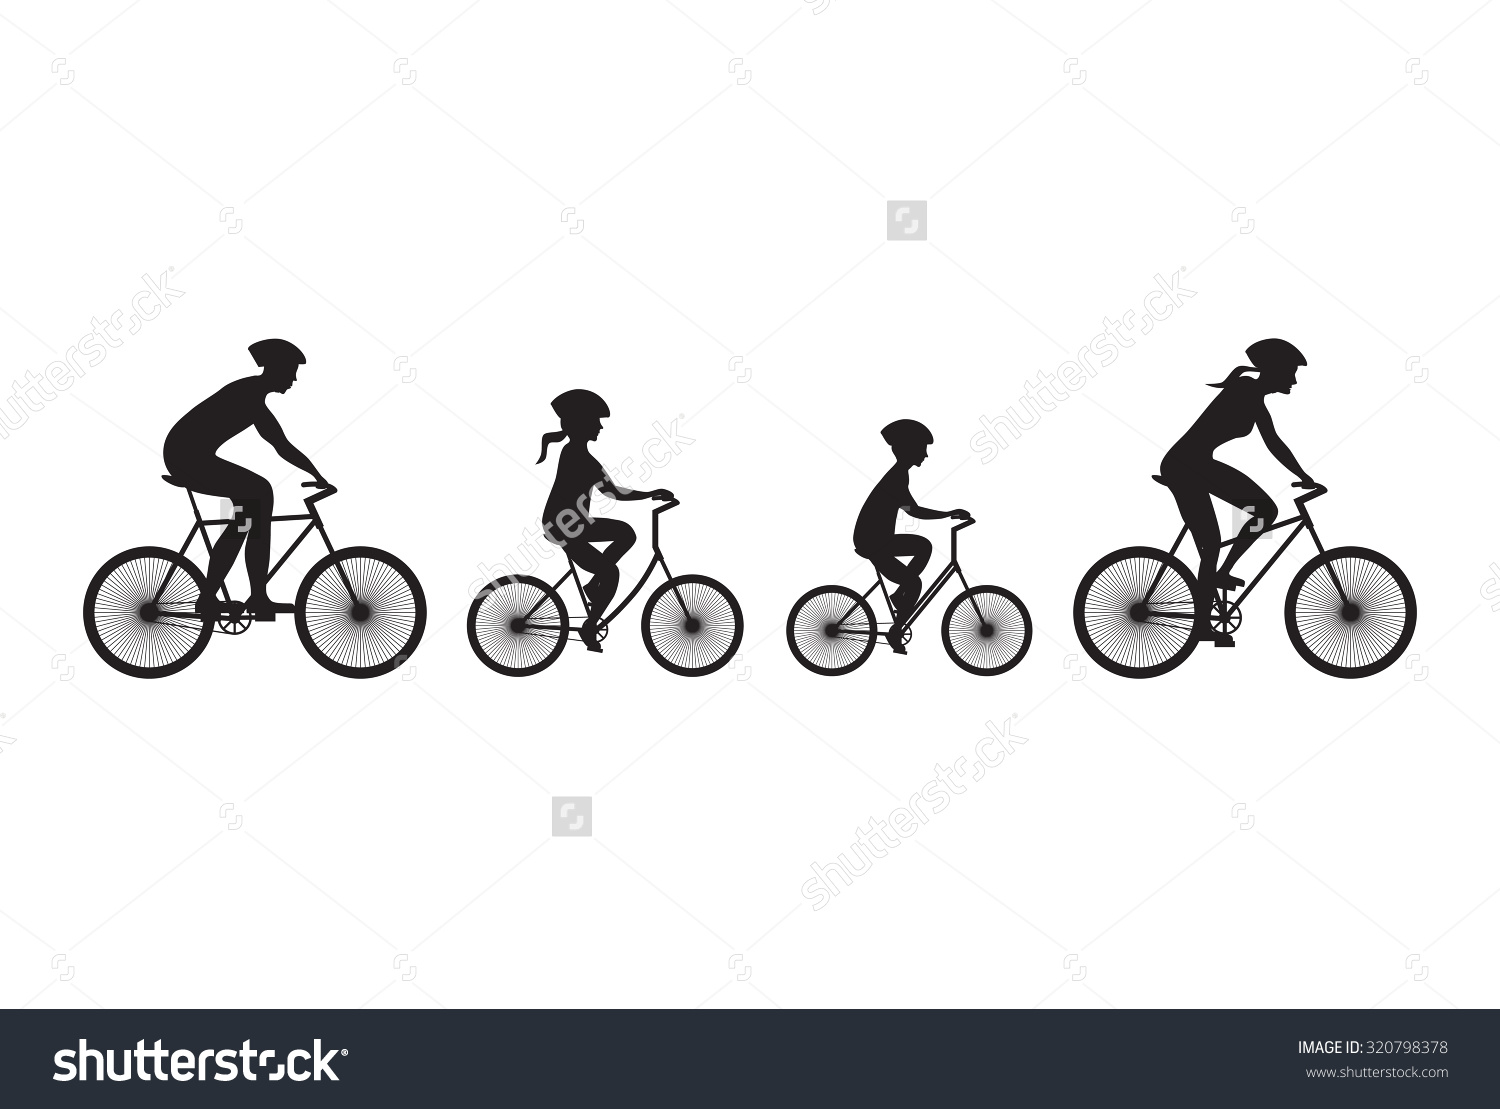 Free Bicycle Family Cliparts, Download Free Clip Art, Free Clip Art.